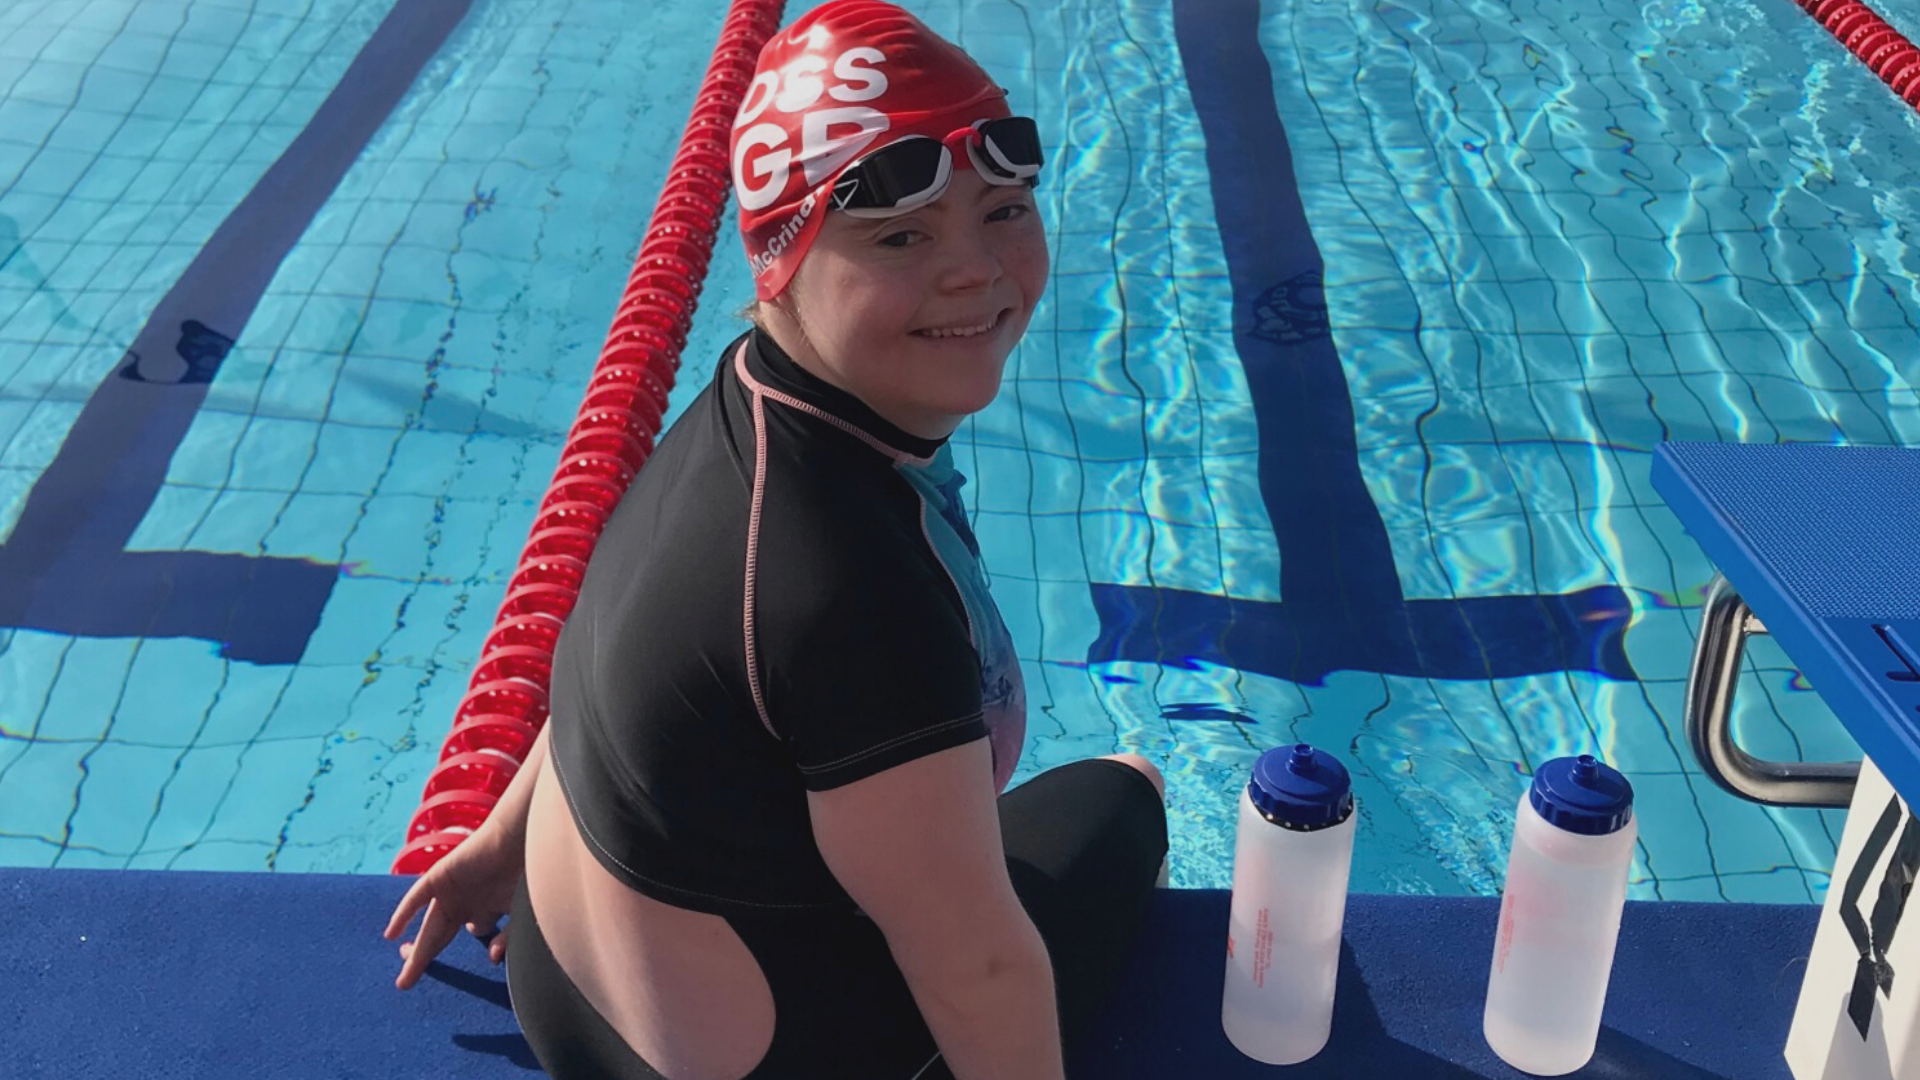 Blog 55: 'Swimming has been a lifeline for me'